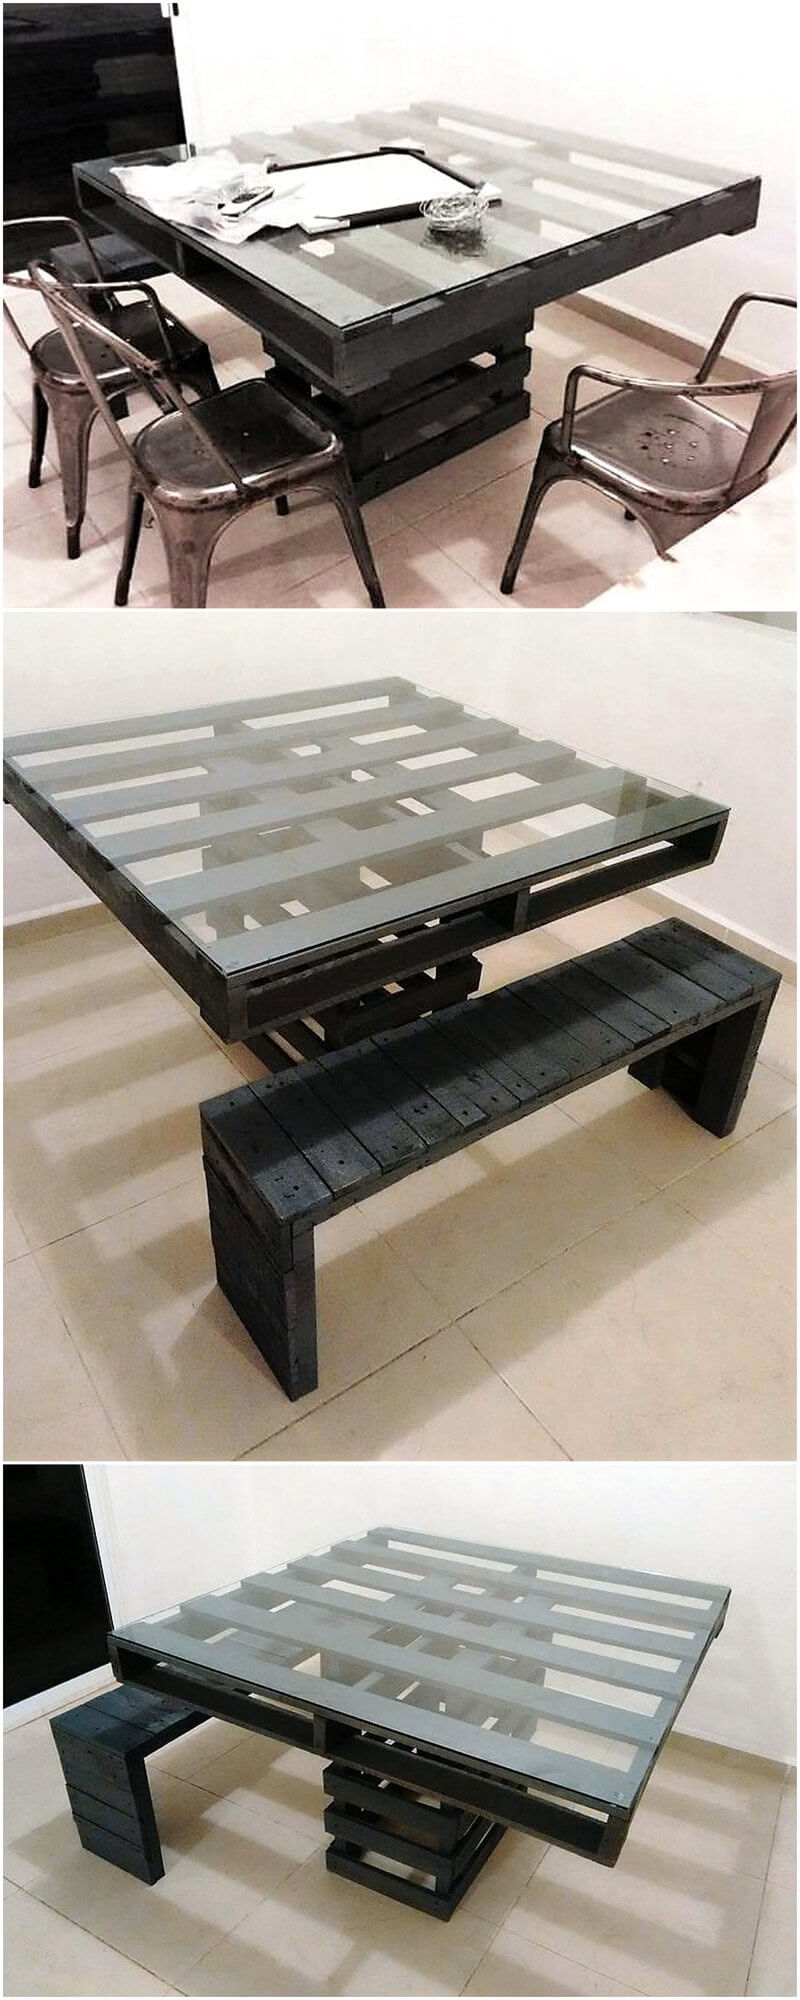 pallets wooden recycled table idea